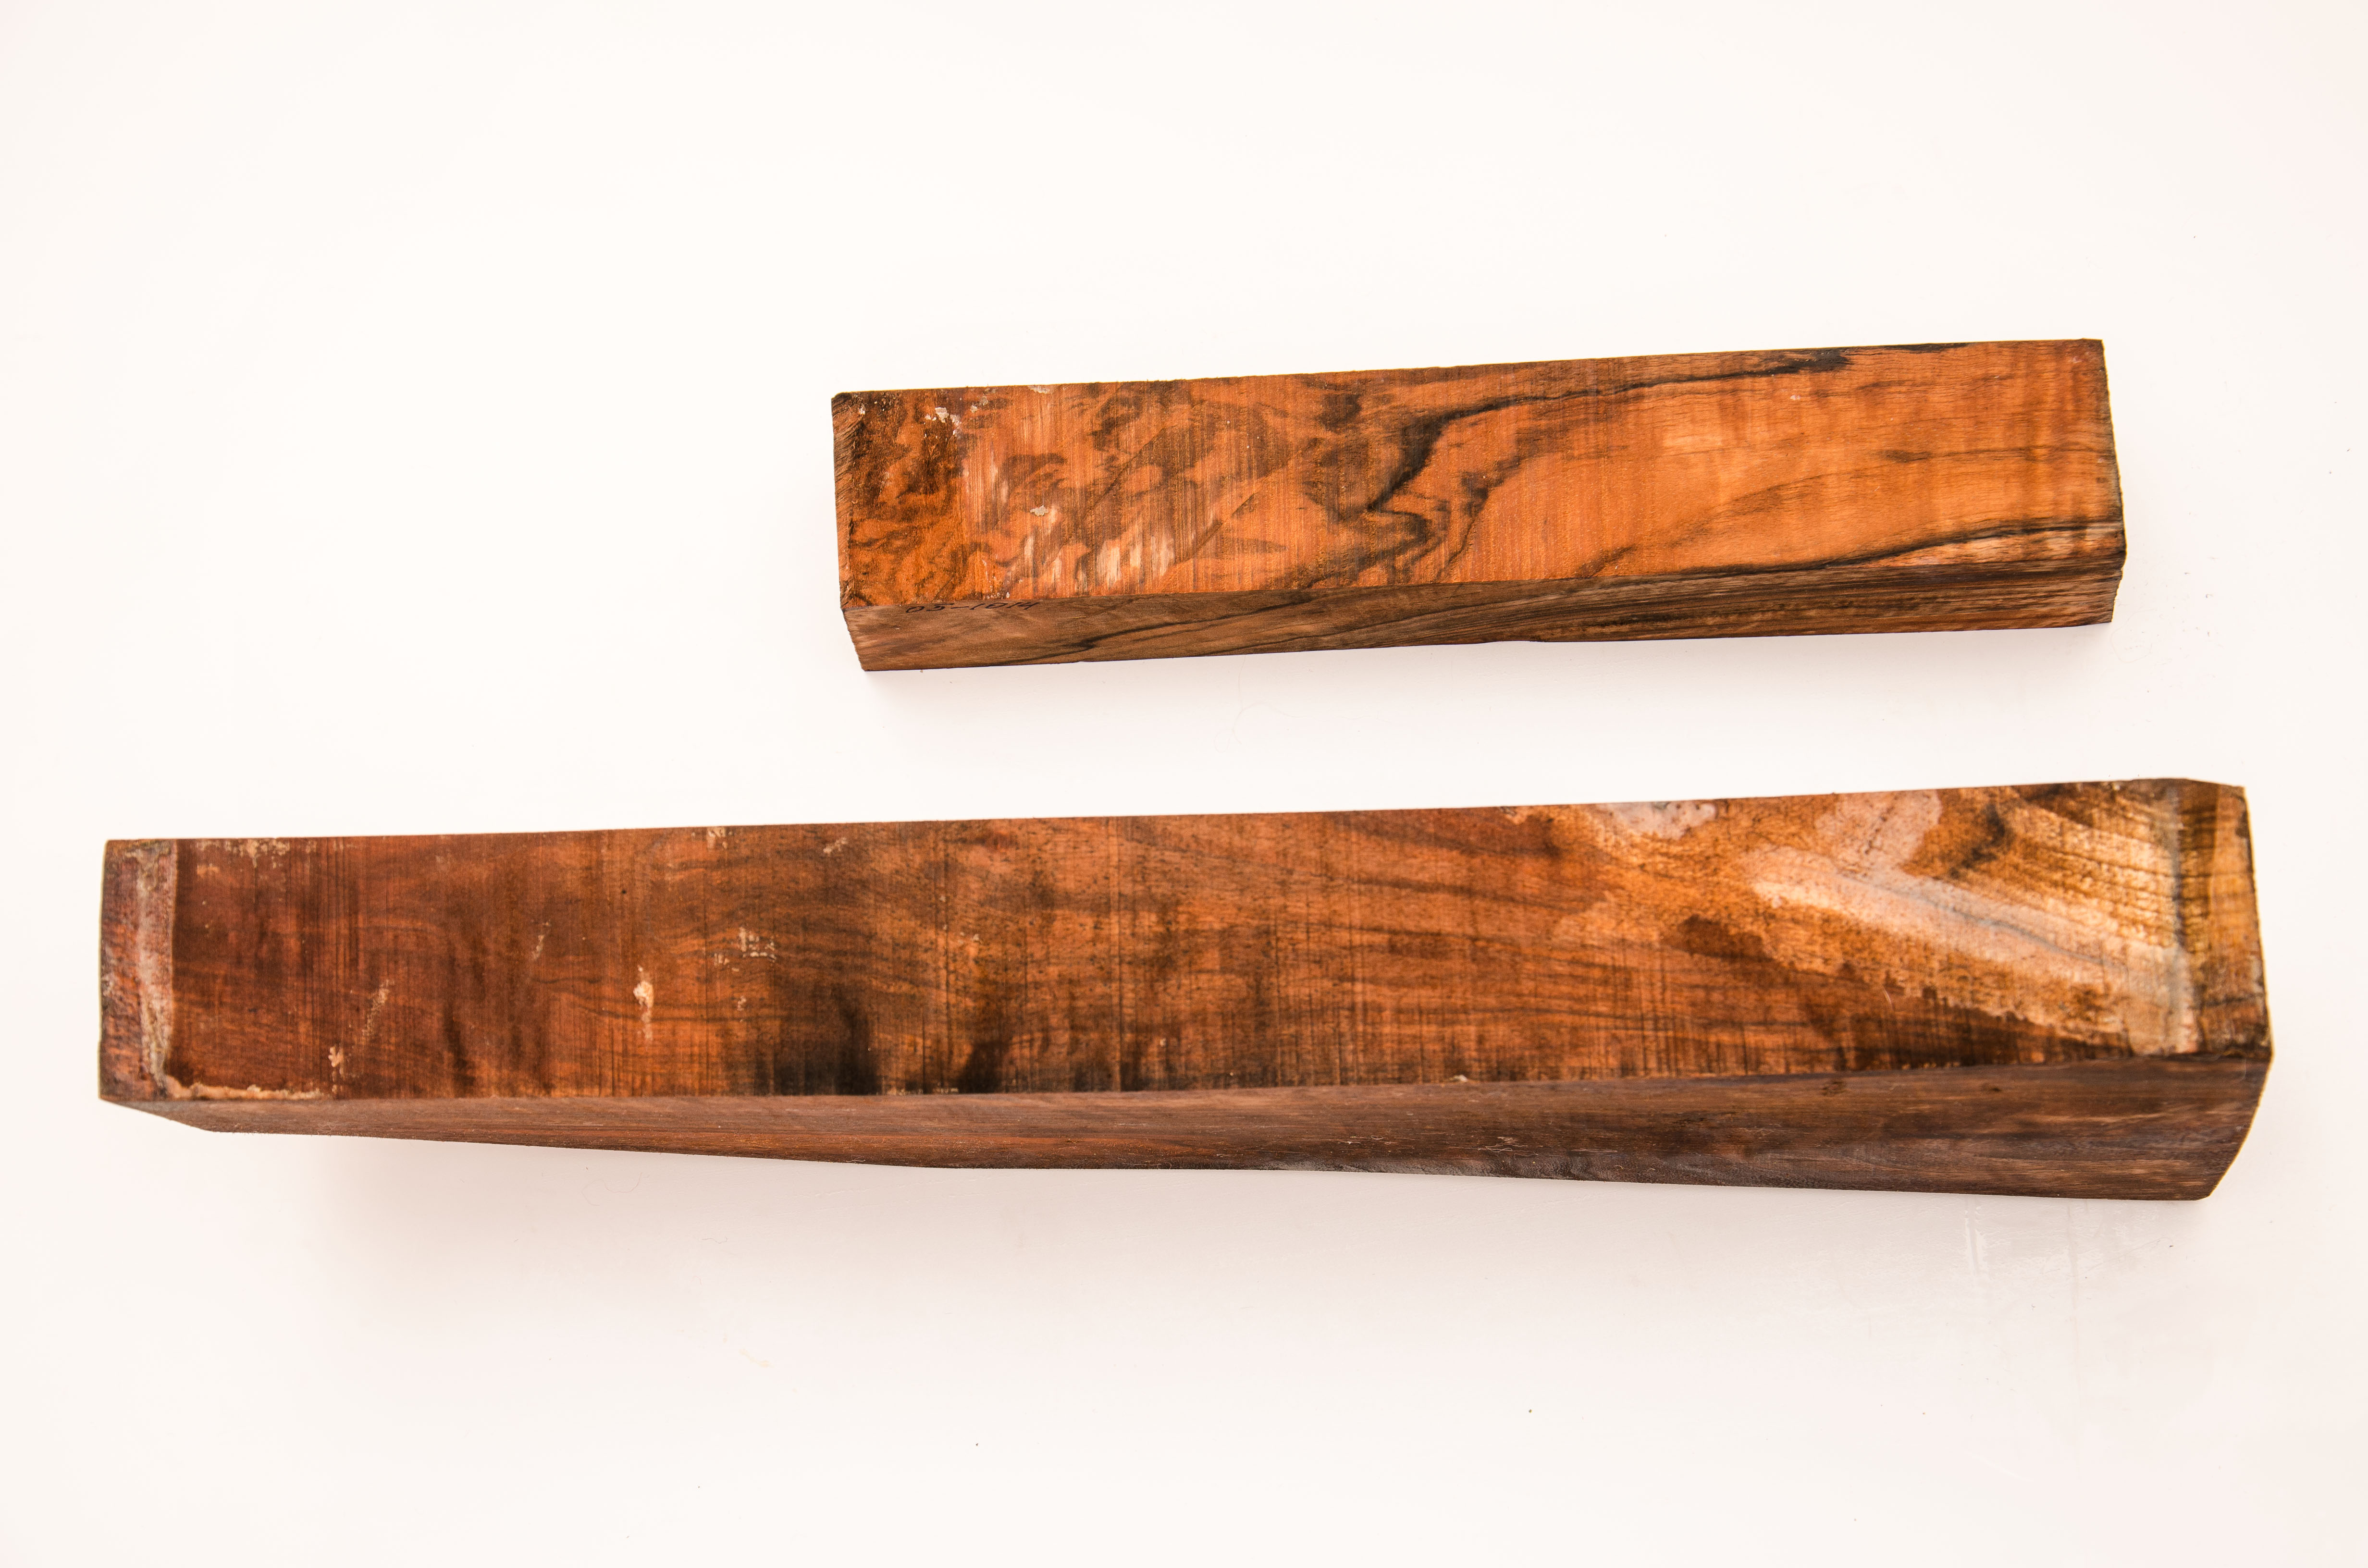 walnut_stock_blanks_for_guns_and_rifles-0582